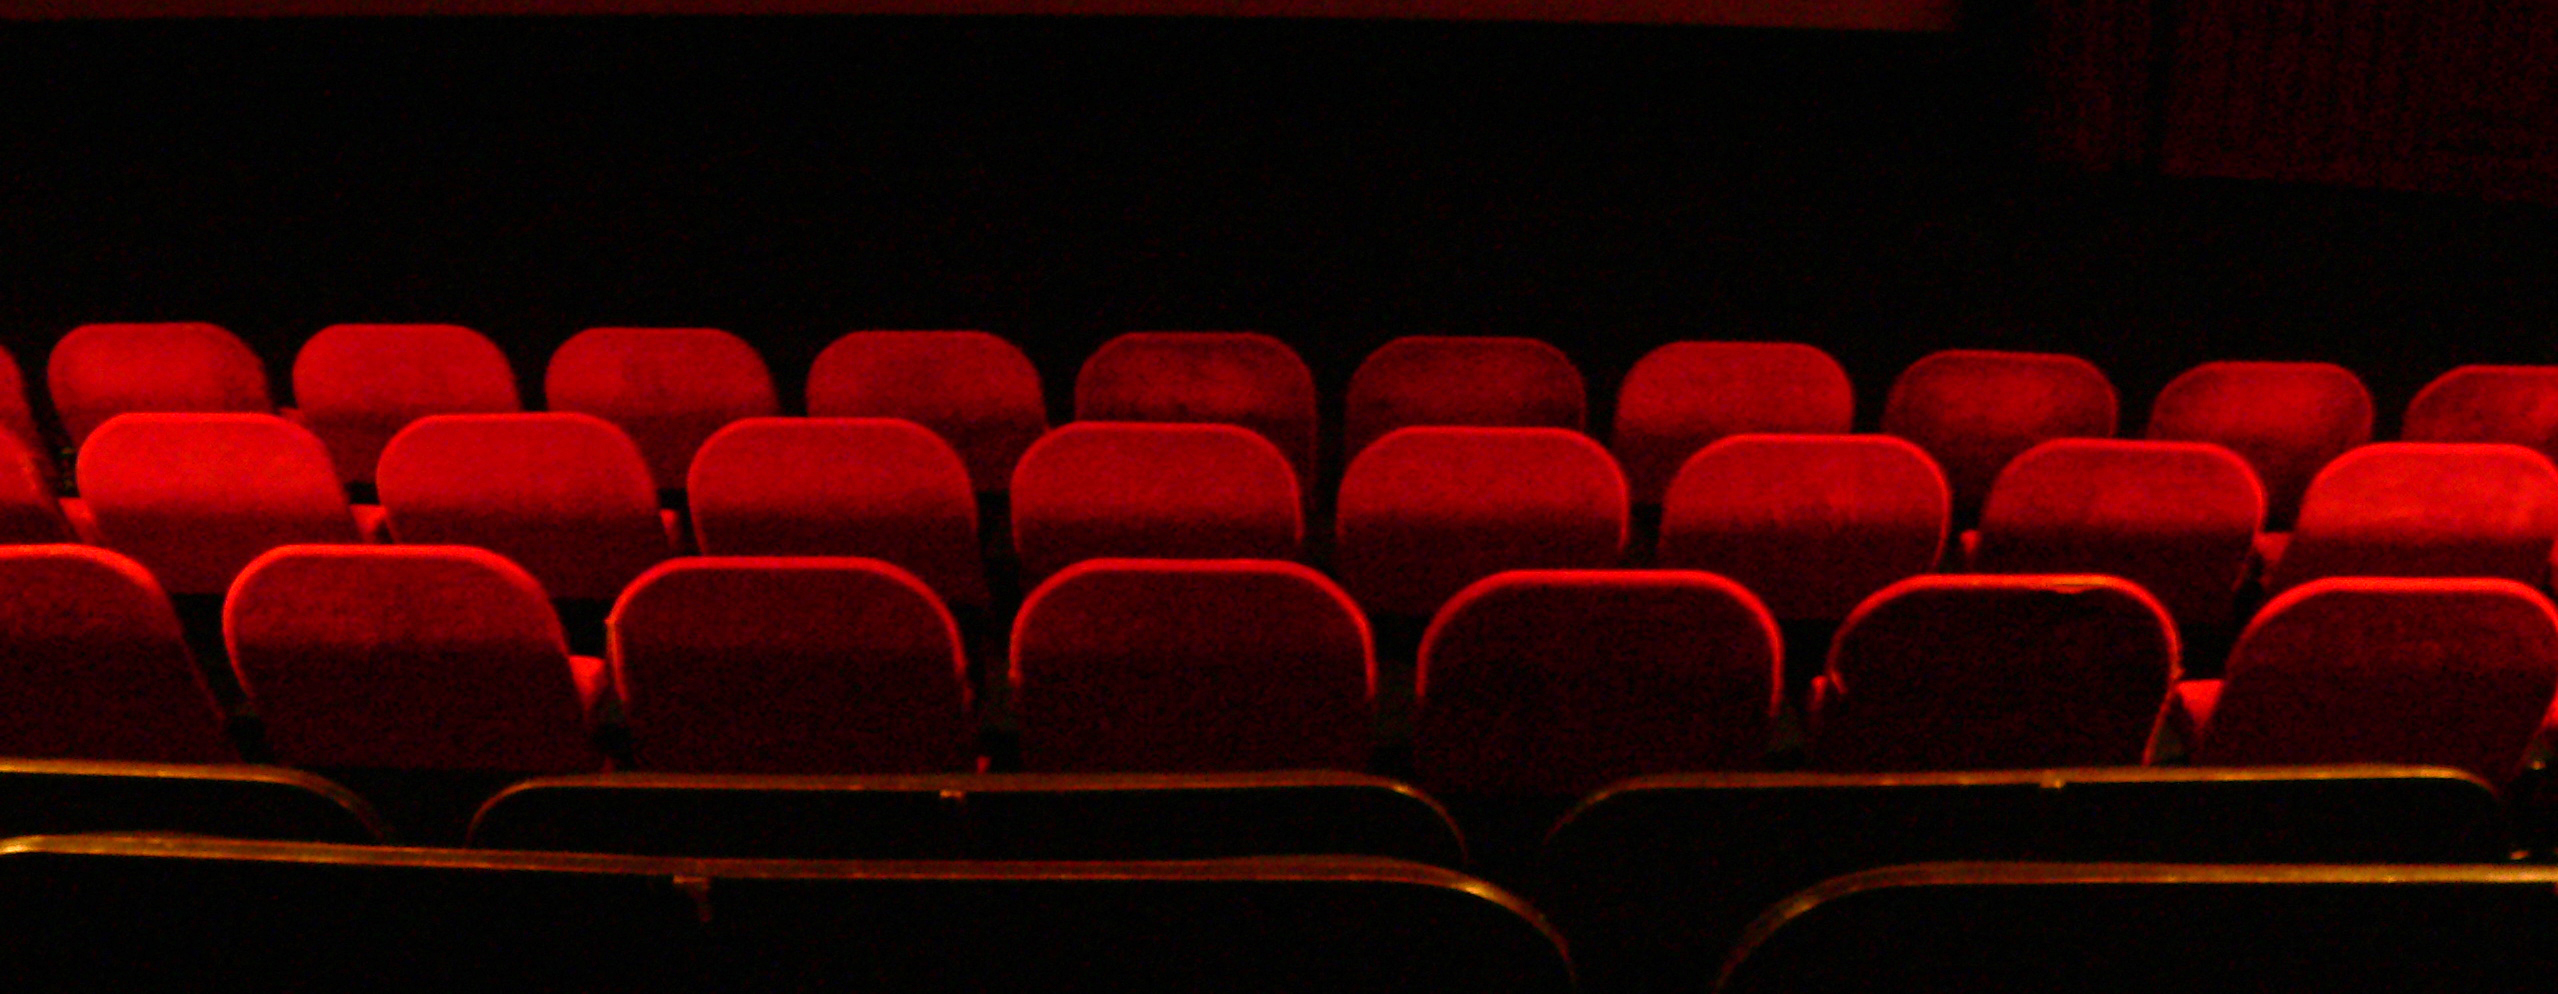 Cinema seats. By Marl Lorch, Flickr.